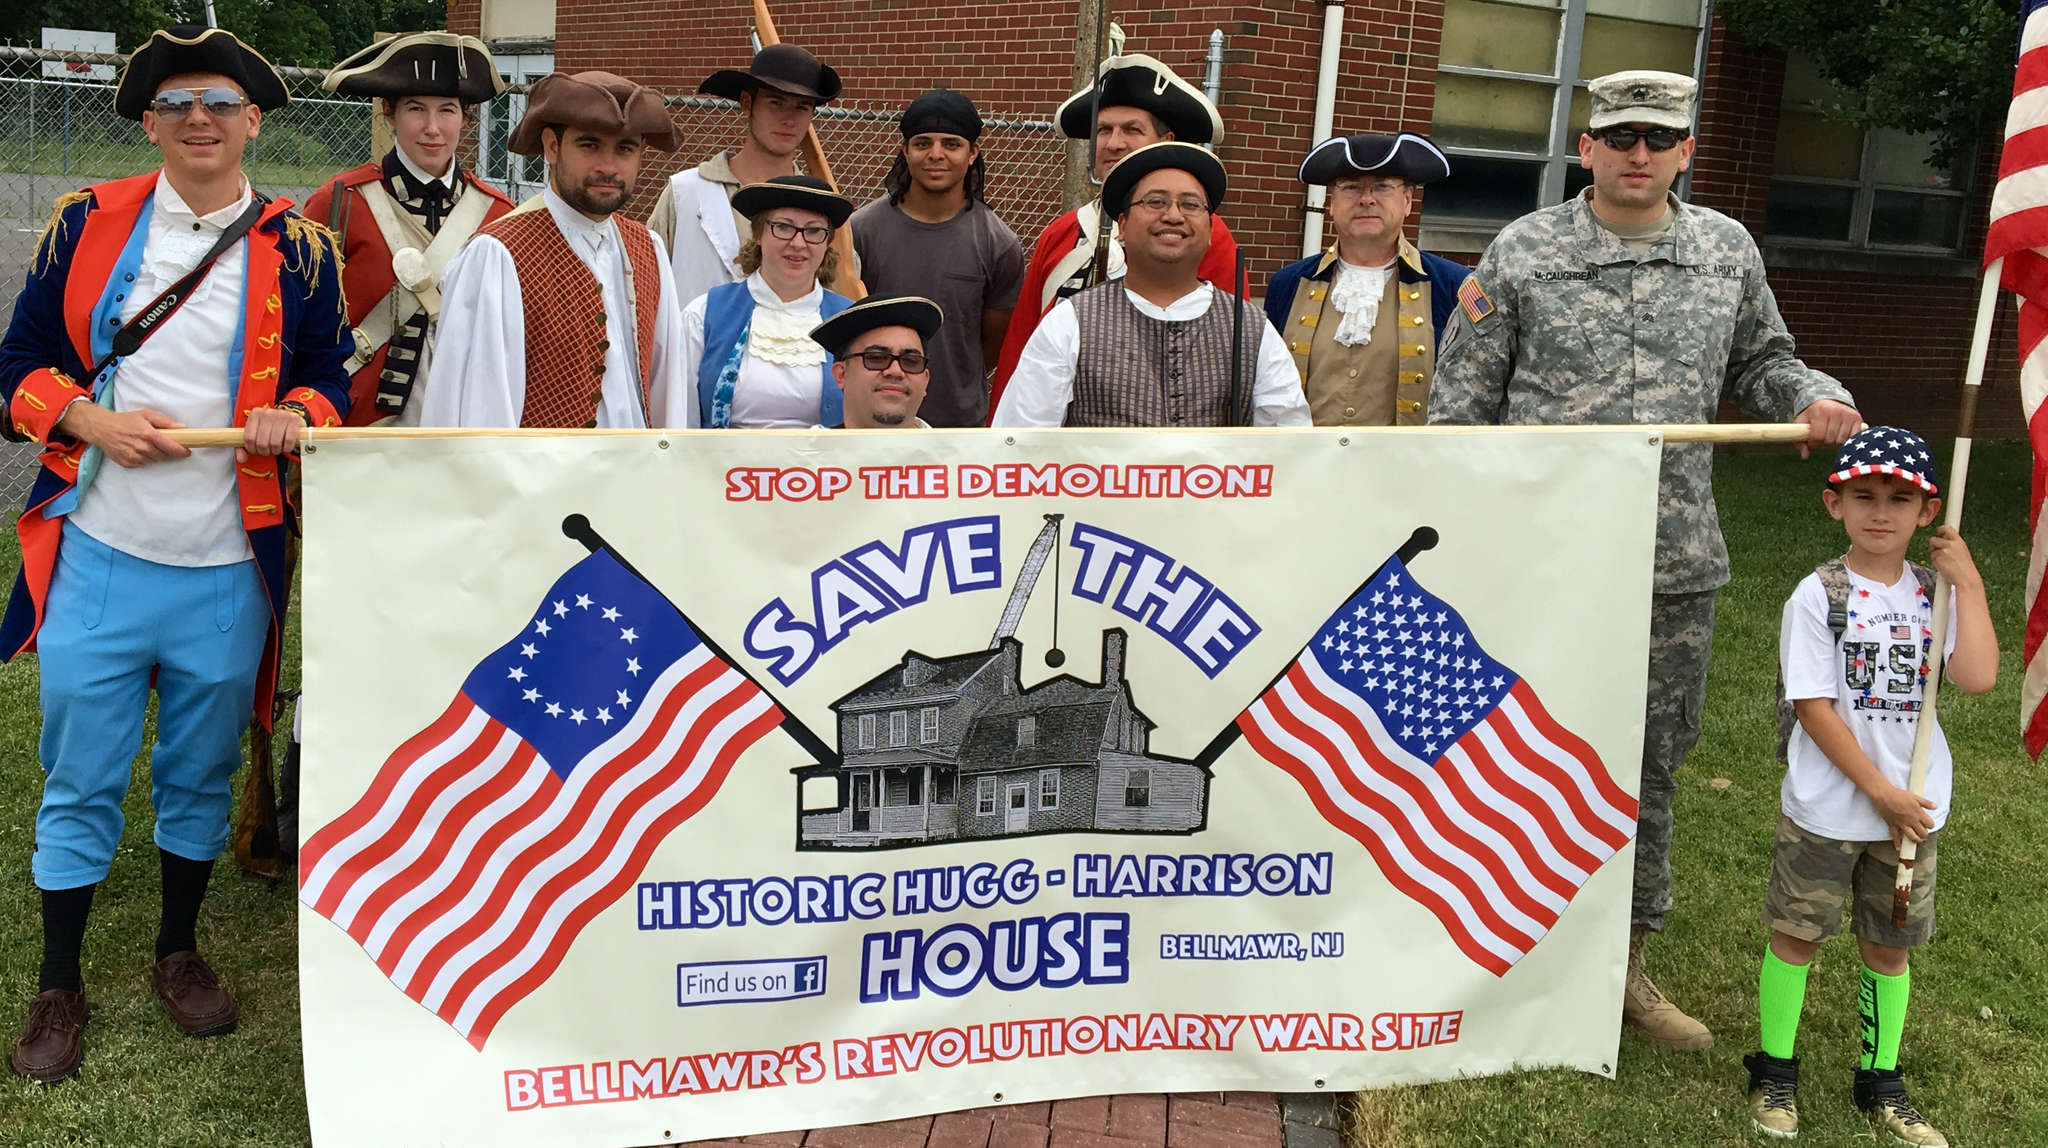 Supporters of saving the Hugg-Harrison House prepare to march in Bellmawr´s July Fourth parade.